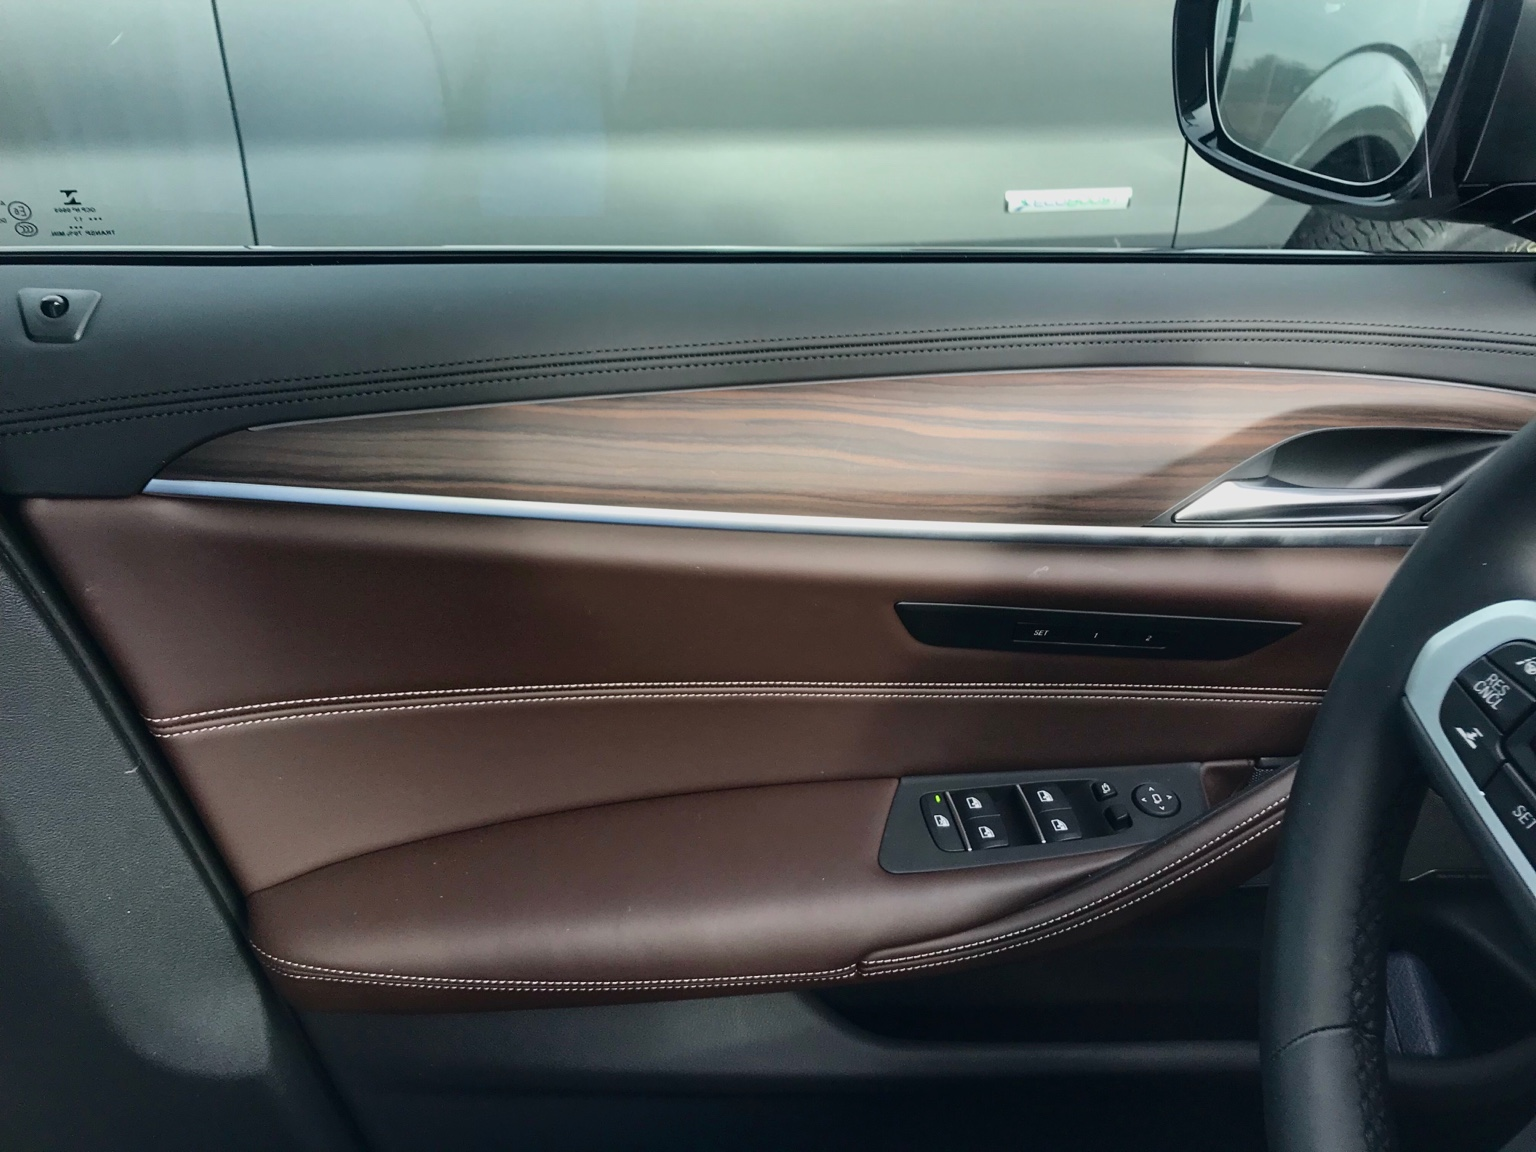 G30 leather dashboard - how does it affect lower dash and